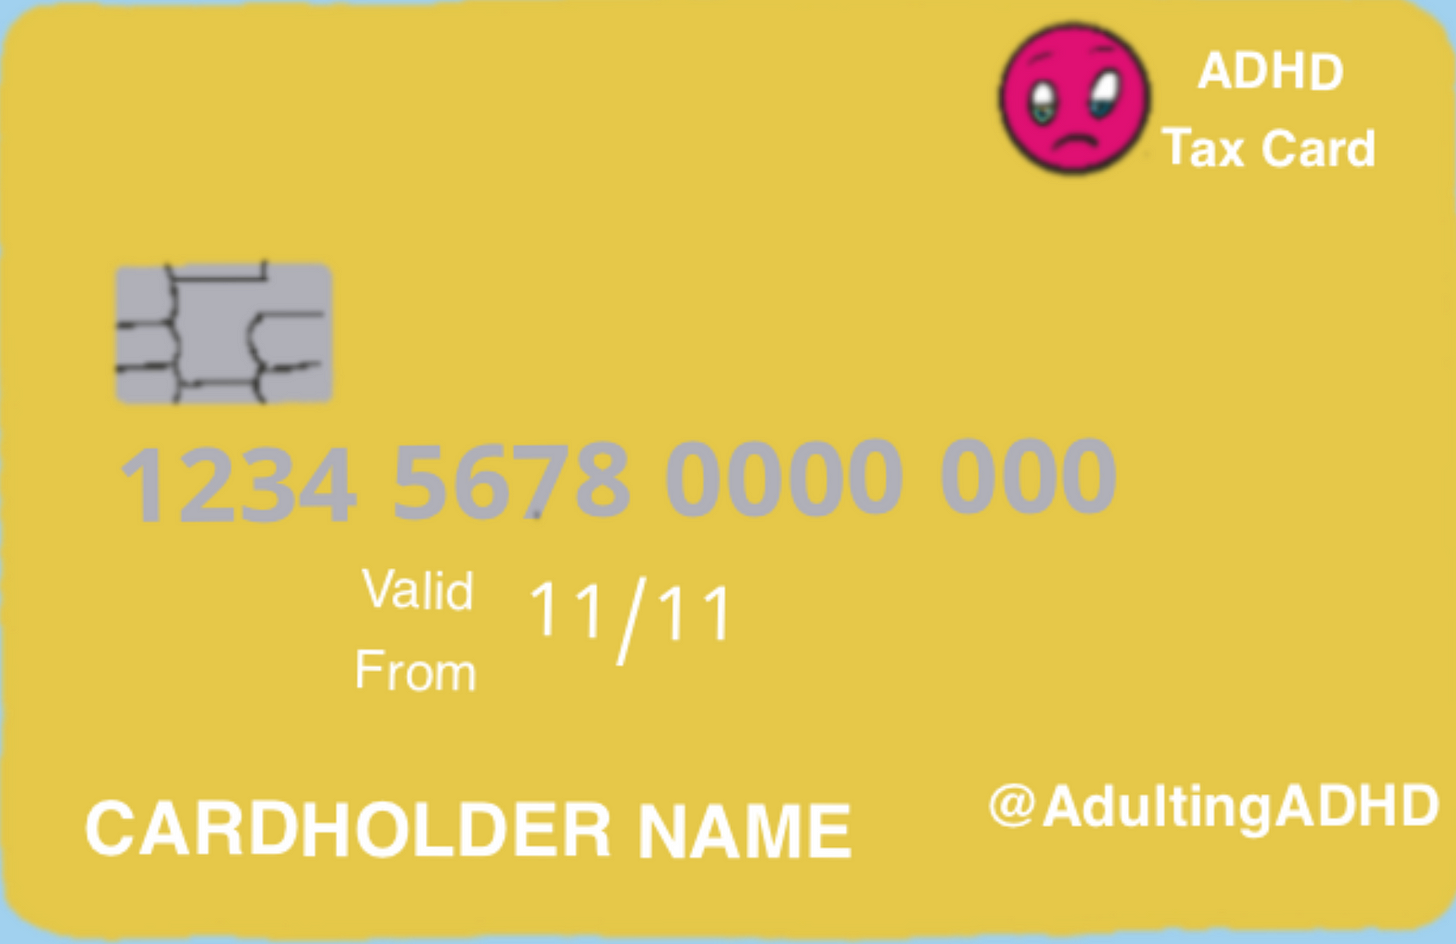 An image of a credit card titled 'ADHD Tax Card', with a pink sad face as the credit card logo